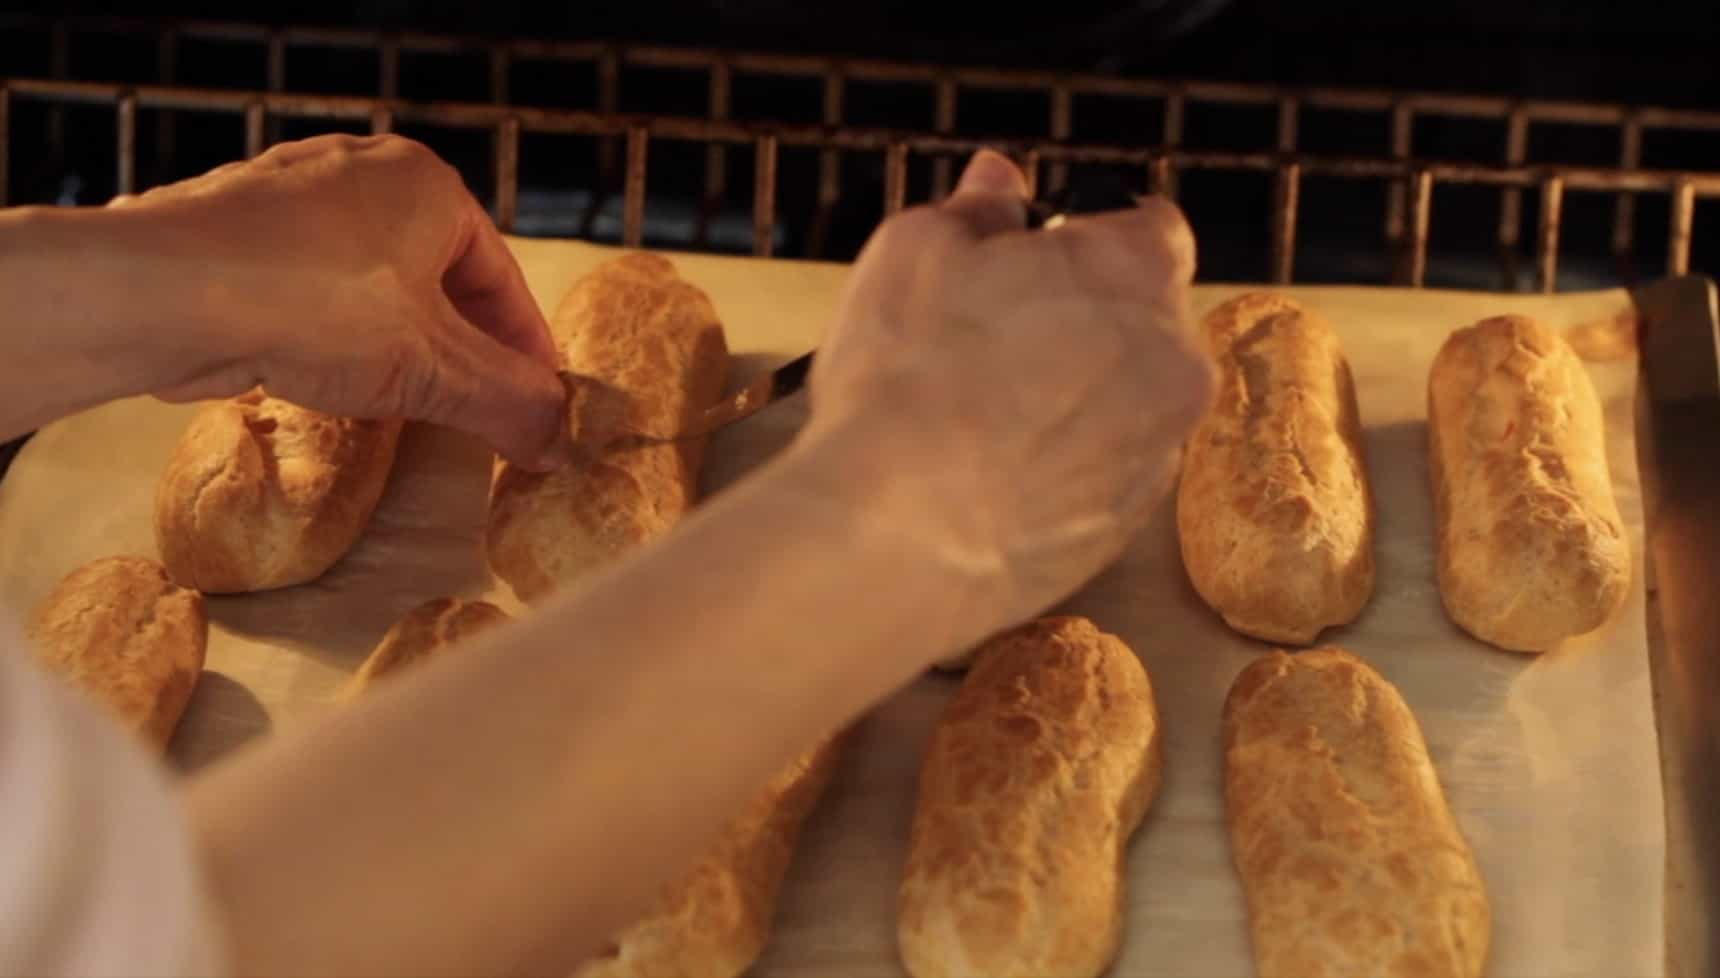 Creating a small incision in the eclair shell with a knife while in the oven to release steam